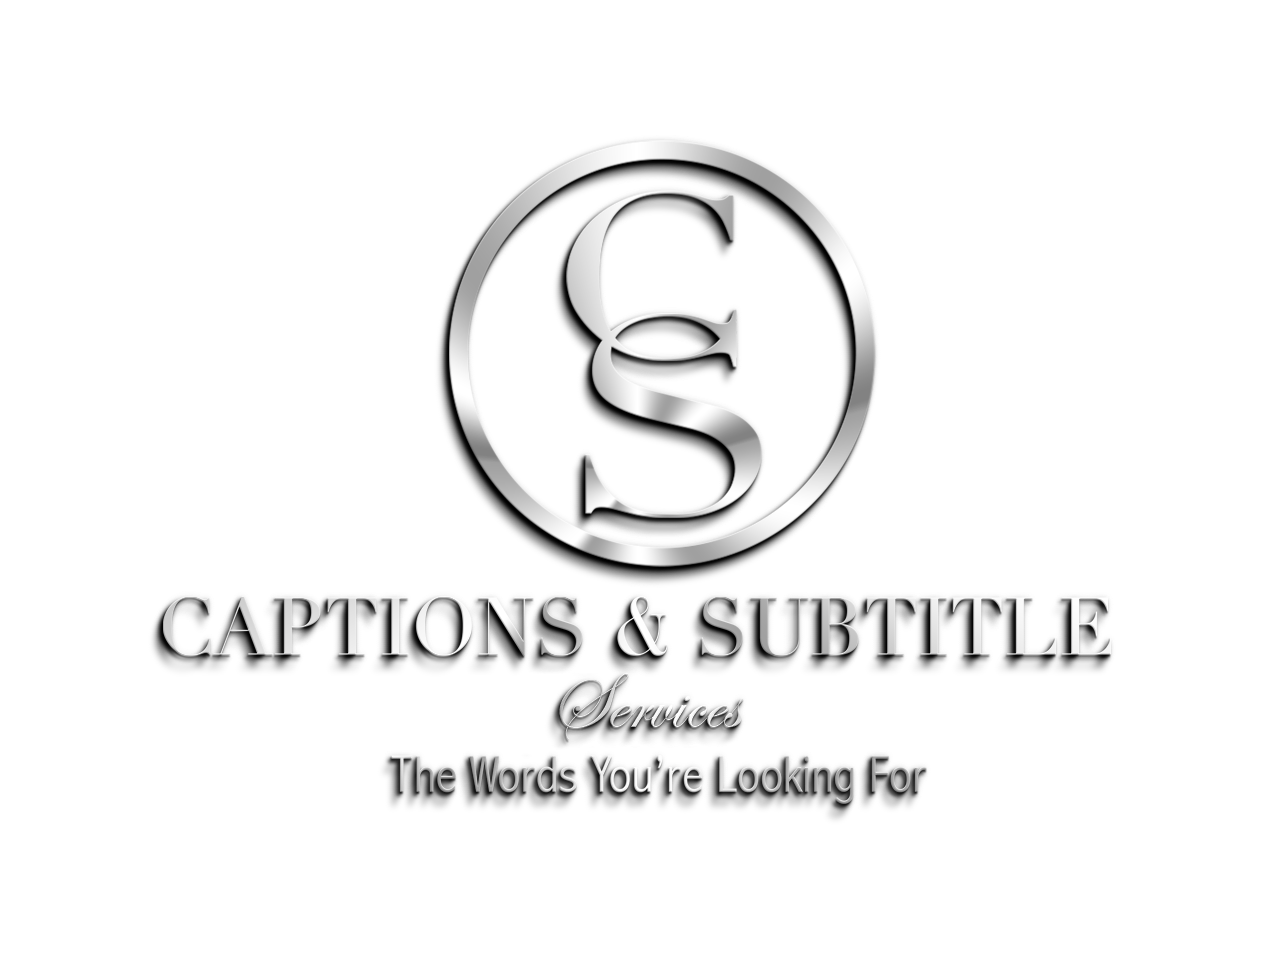 Captions and Subtitle Services logo